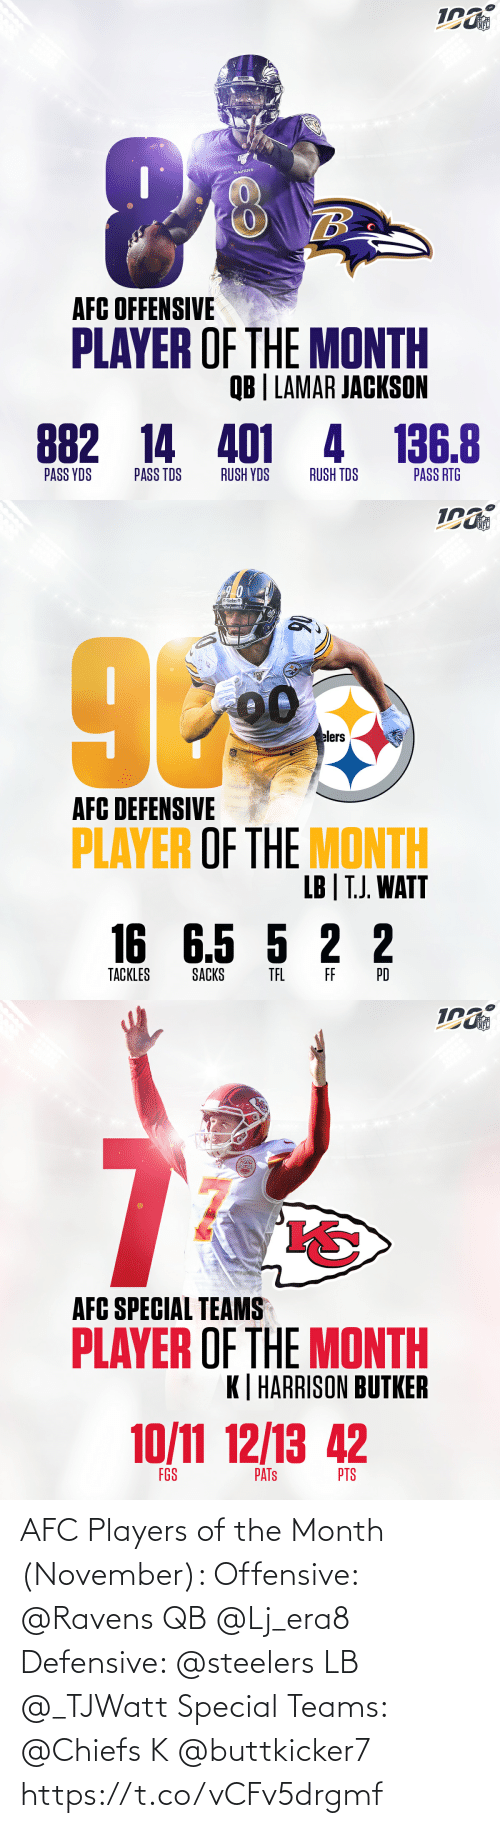 tds: NFL  RAVENS  AFC OFFENSIVE  PLAYER OF THE MONTH  QB | LAMAR JACKSON  882 14 401 4 136.8  PASS YDS  PASS TDS  RUSH YDS  RUSH TDS  PASS RTG   NFL  elers  AFC DEFENSIVE  PLAYER OF THE MONTH  LB | T.J. WATT  16 6.5 5 2 2  TACKLES  SACKS  TEL  FF  PD   NFL  AFC SPECIAL TEAMS  PLAYER OF THE MONTH  K| HARRISON BUTKER  10/11 12/13 42  FGS  PTS  PATS AFC Players of the Month (November):   Offensive: @Ravens QB @Lj_era8  Defensive: @steelers LB @_TJWatt  Special Teams: @Chiefs K @buttkicker7 https://t.co/vCFv5drgmf